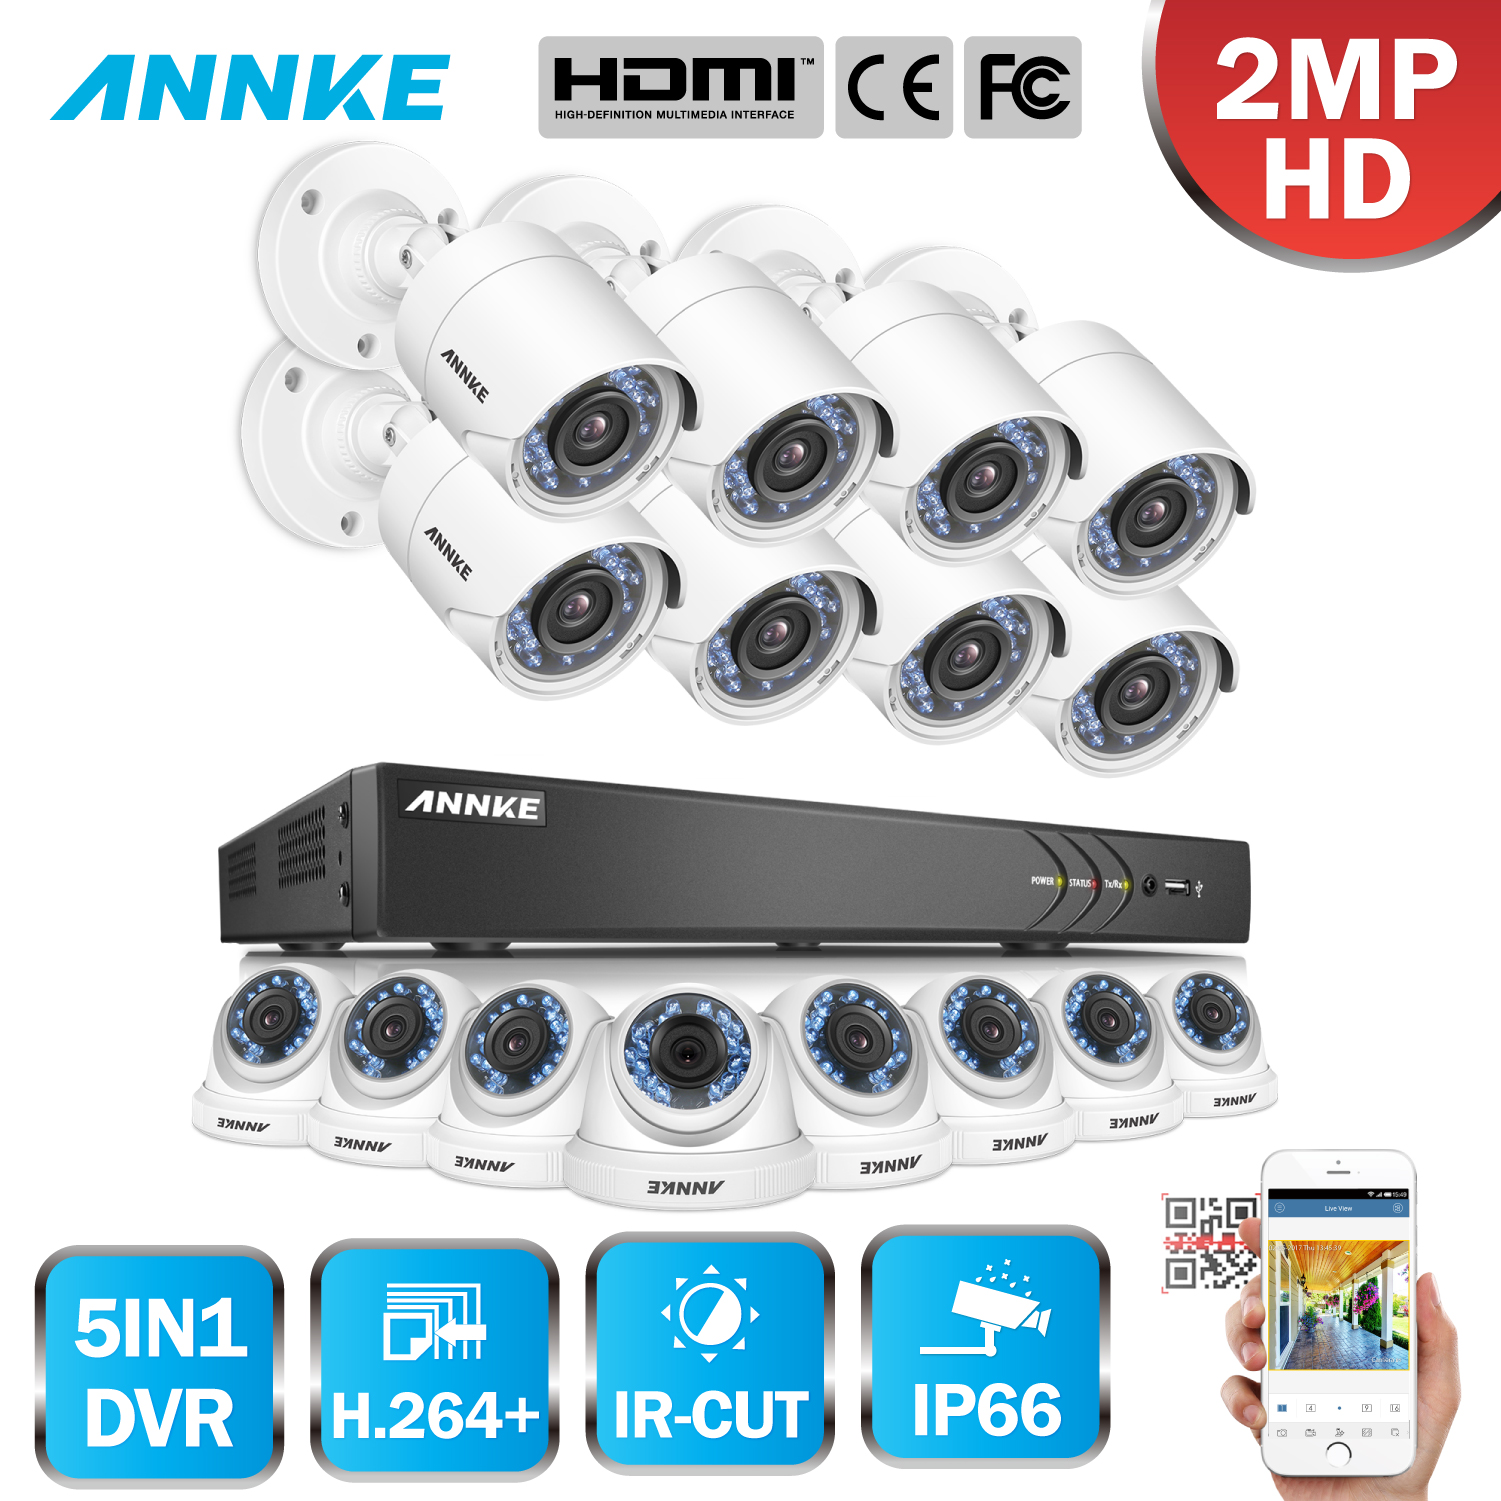 ANNKE 1080P 16CH HD 5in1 3MP DVR VCA 16pcs 2MP HD TVI Smart IR Day Night Vision Bullet CCTV Camera Security Surveillance System hikvision new english version ds 2ce56d5t vfi cctv turbo hd camera 1080p 2mp with ir day night security video surveillance